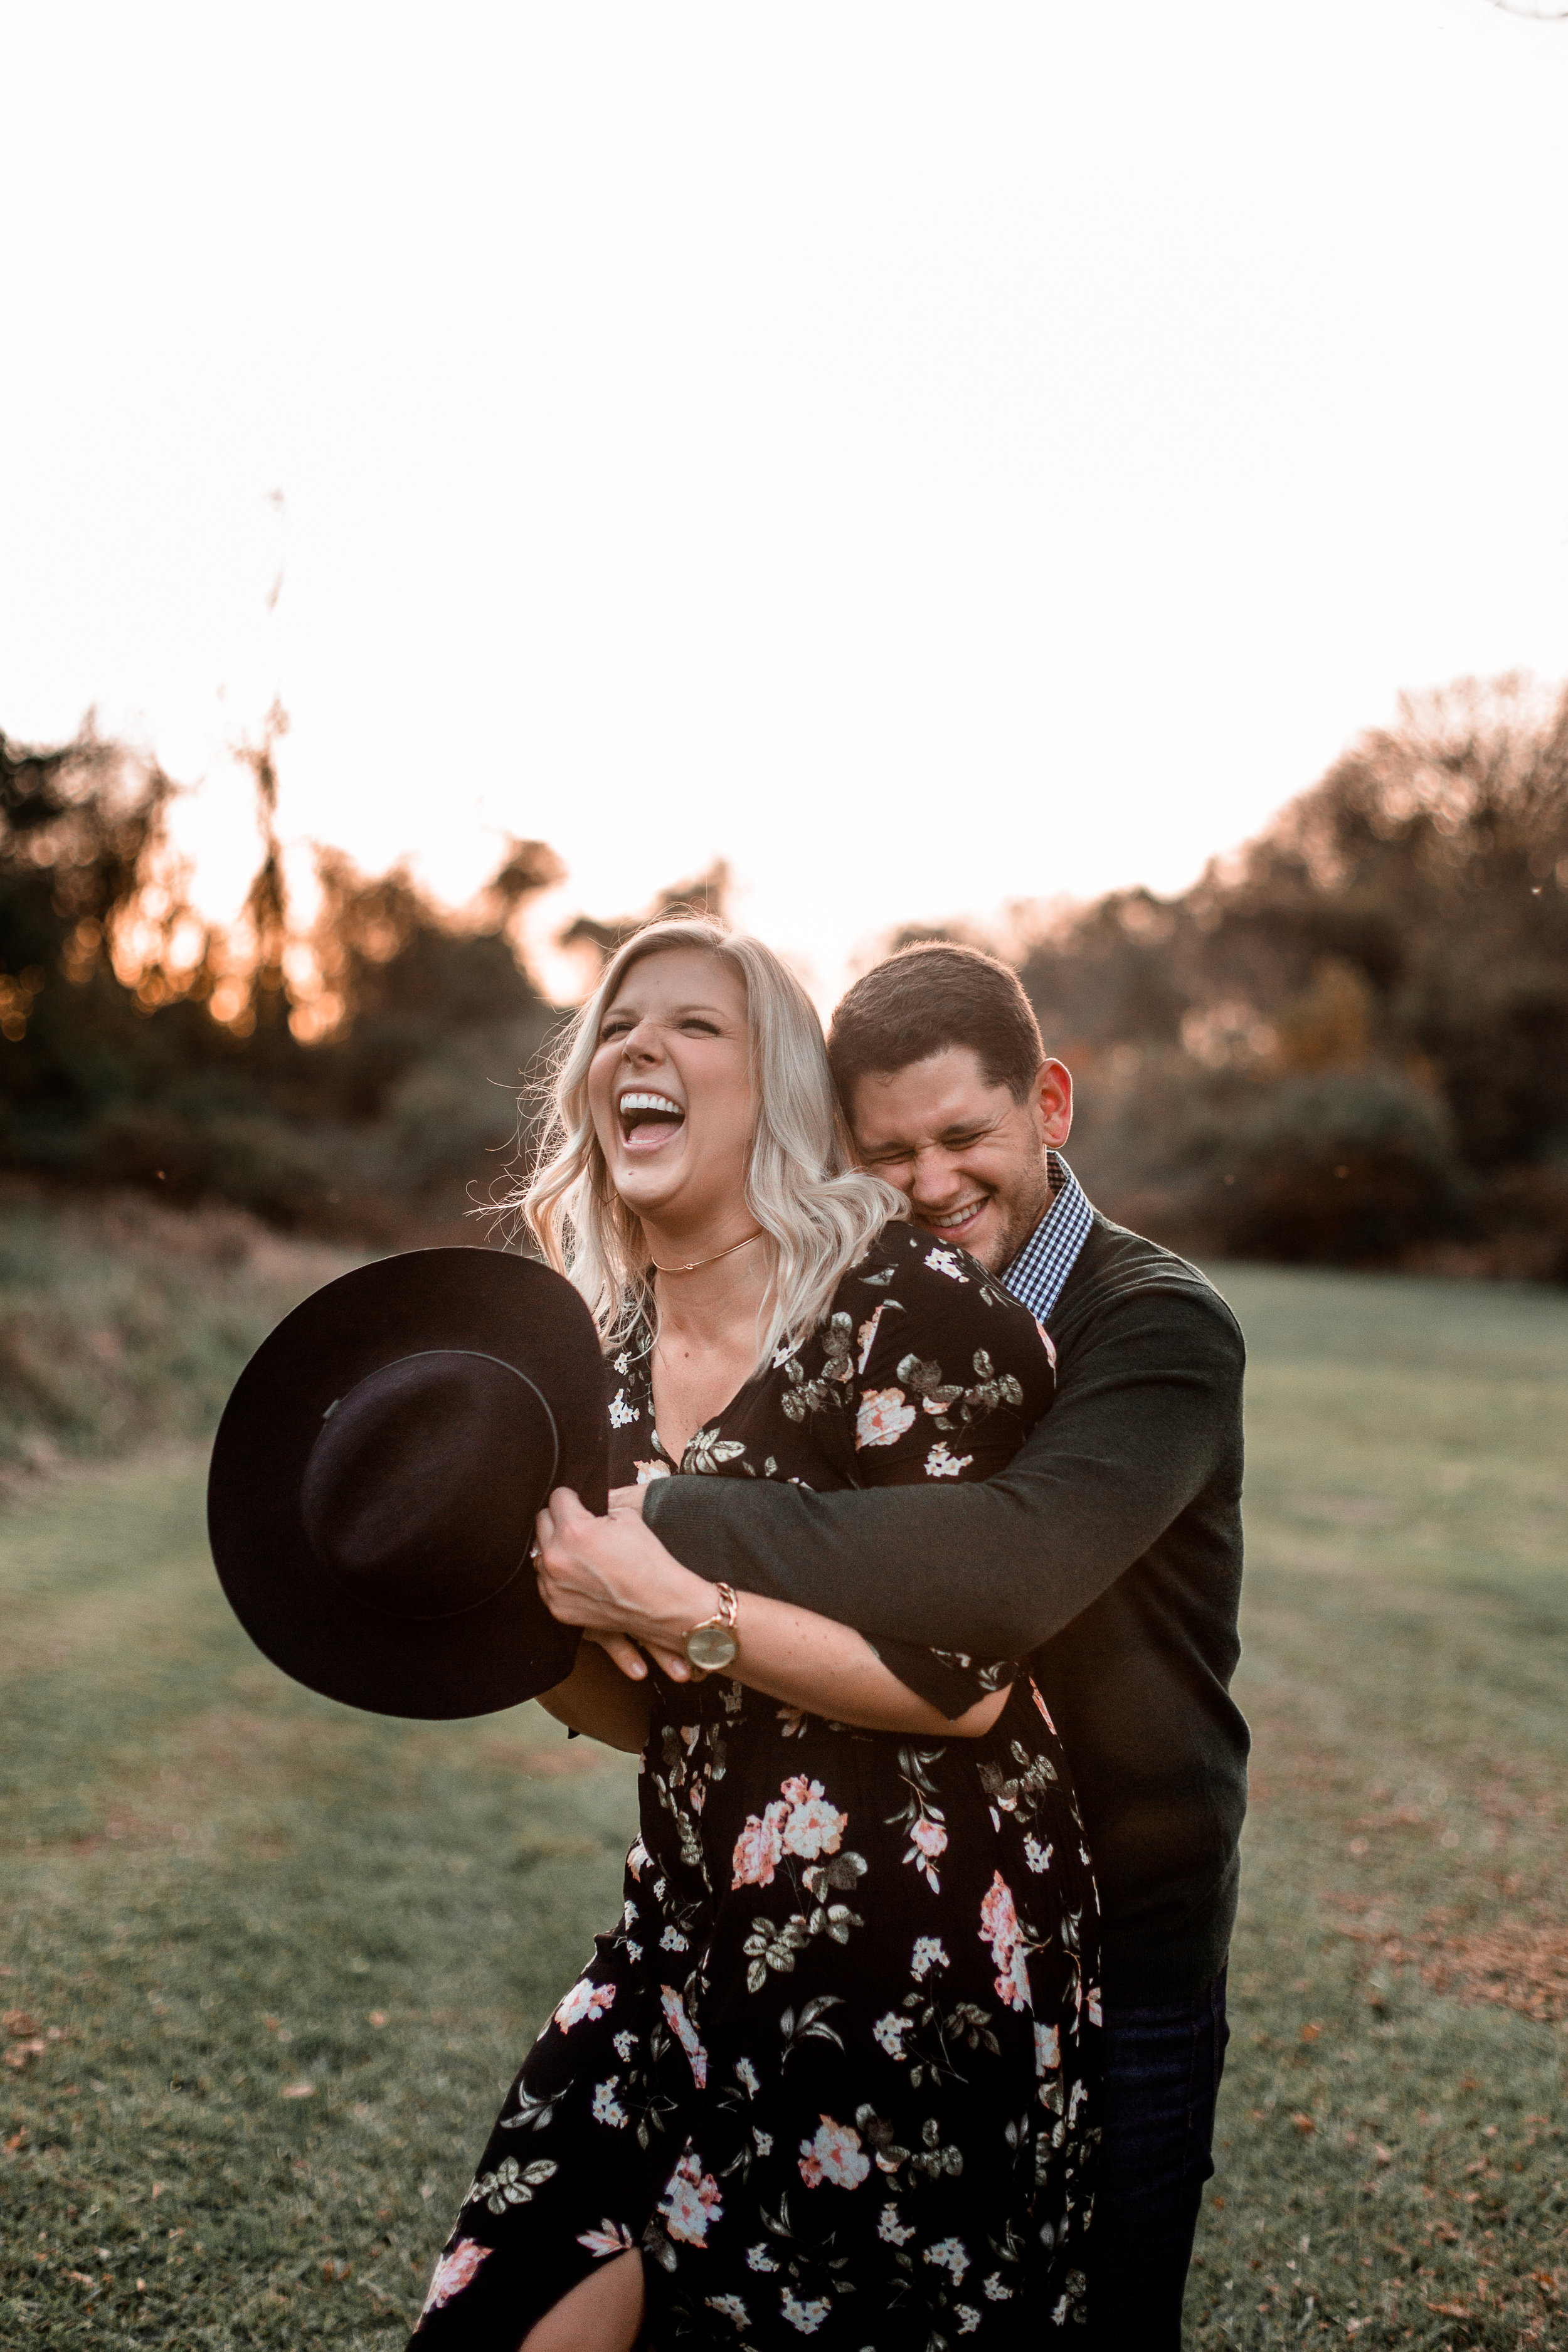 nicole-daacke-photography-carefree-bohemian-lancaster-pa-pennsylvania-engagement-photos-engagement-session-golden-sunset-adventure-session-in-lancaster-pa-lancaster-pa-outdoor-wedding-photographer-43.jpg